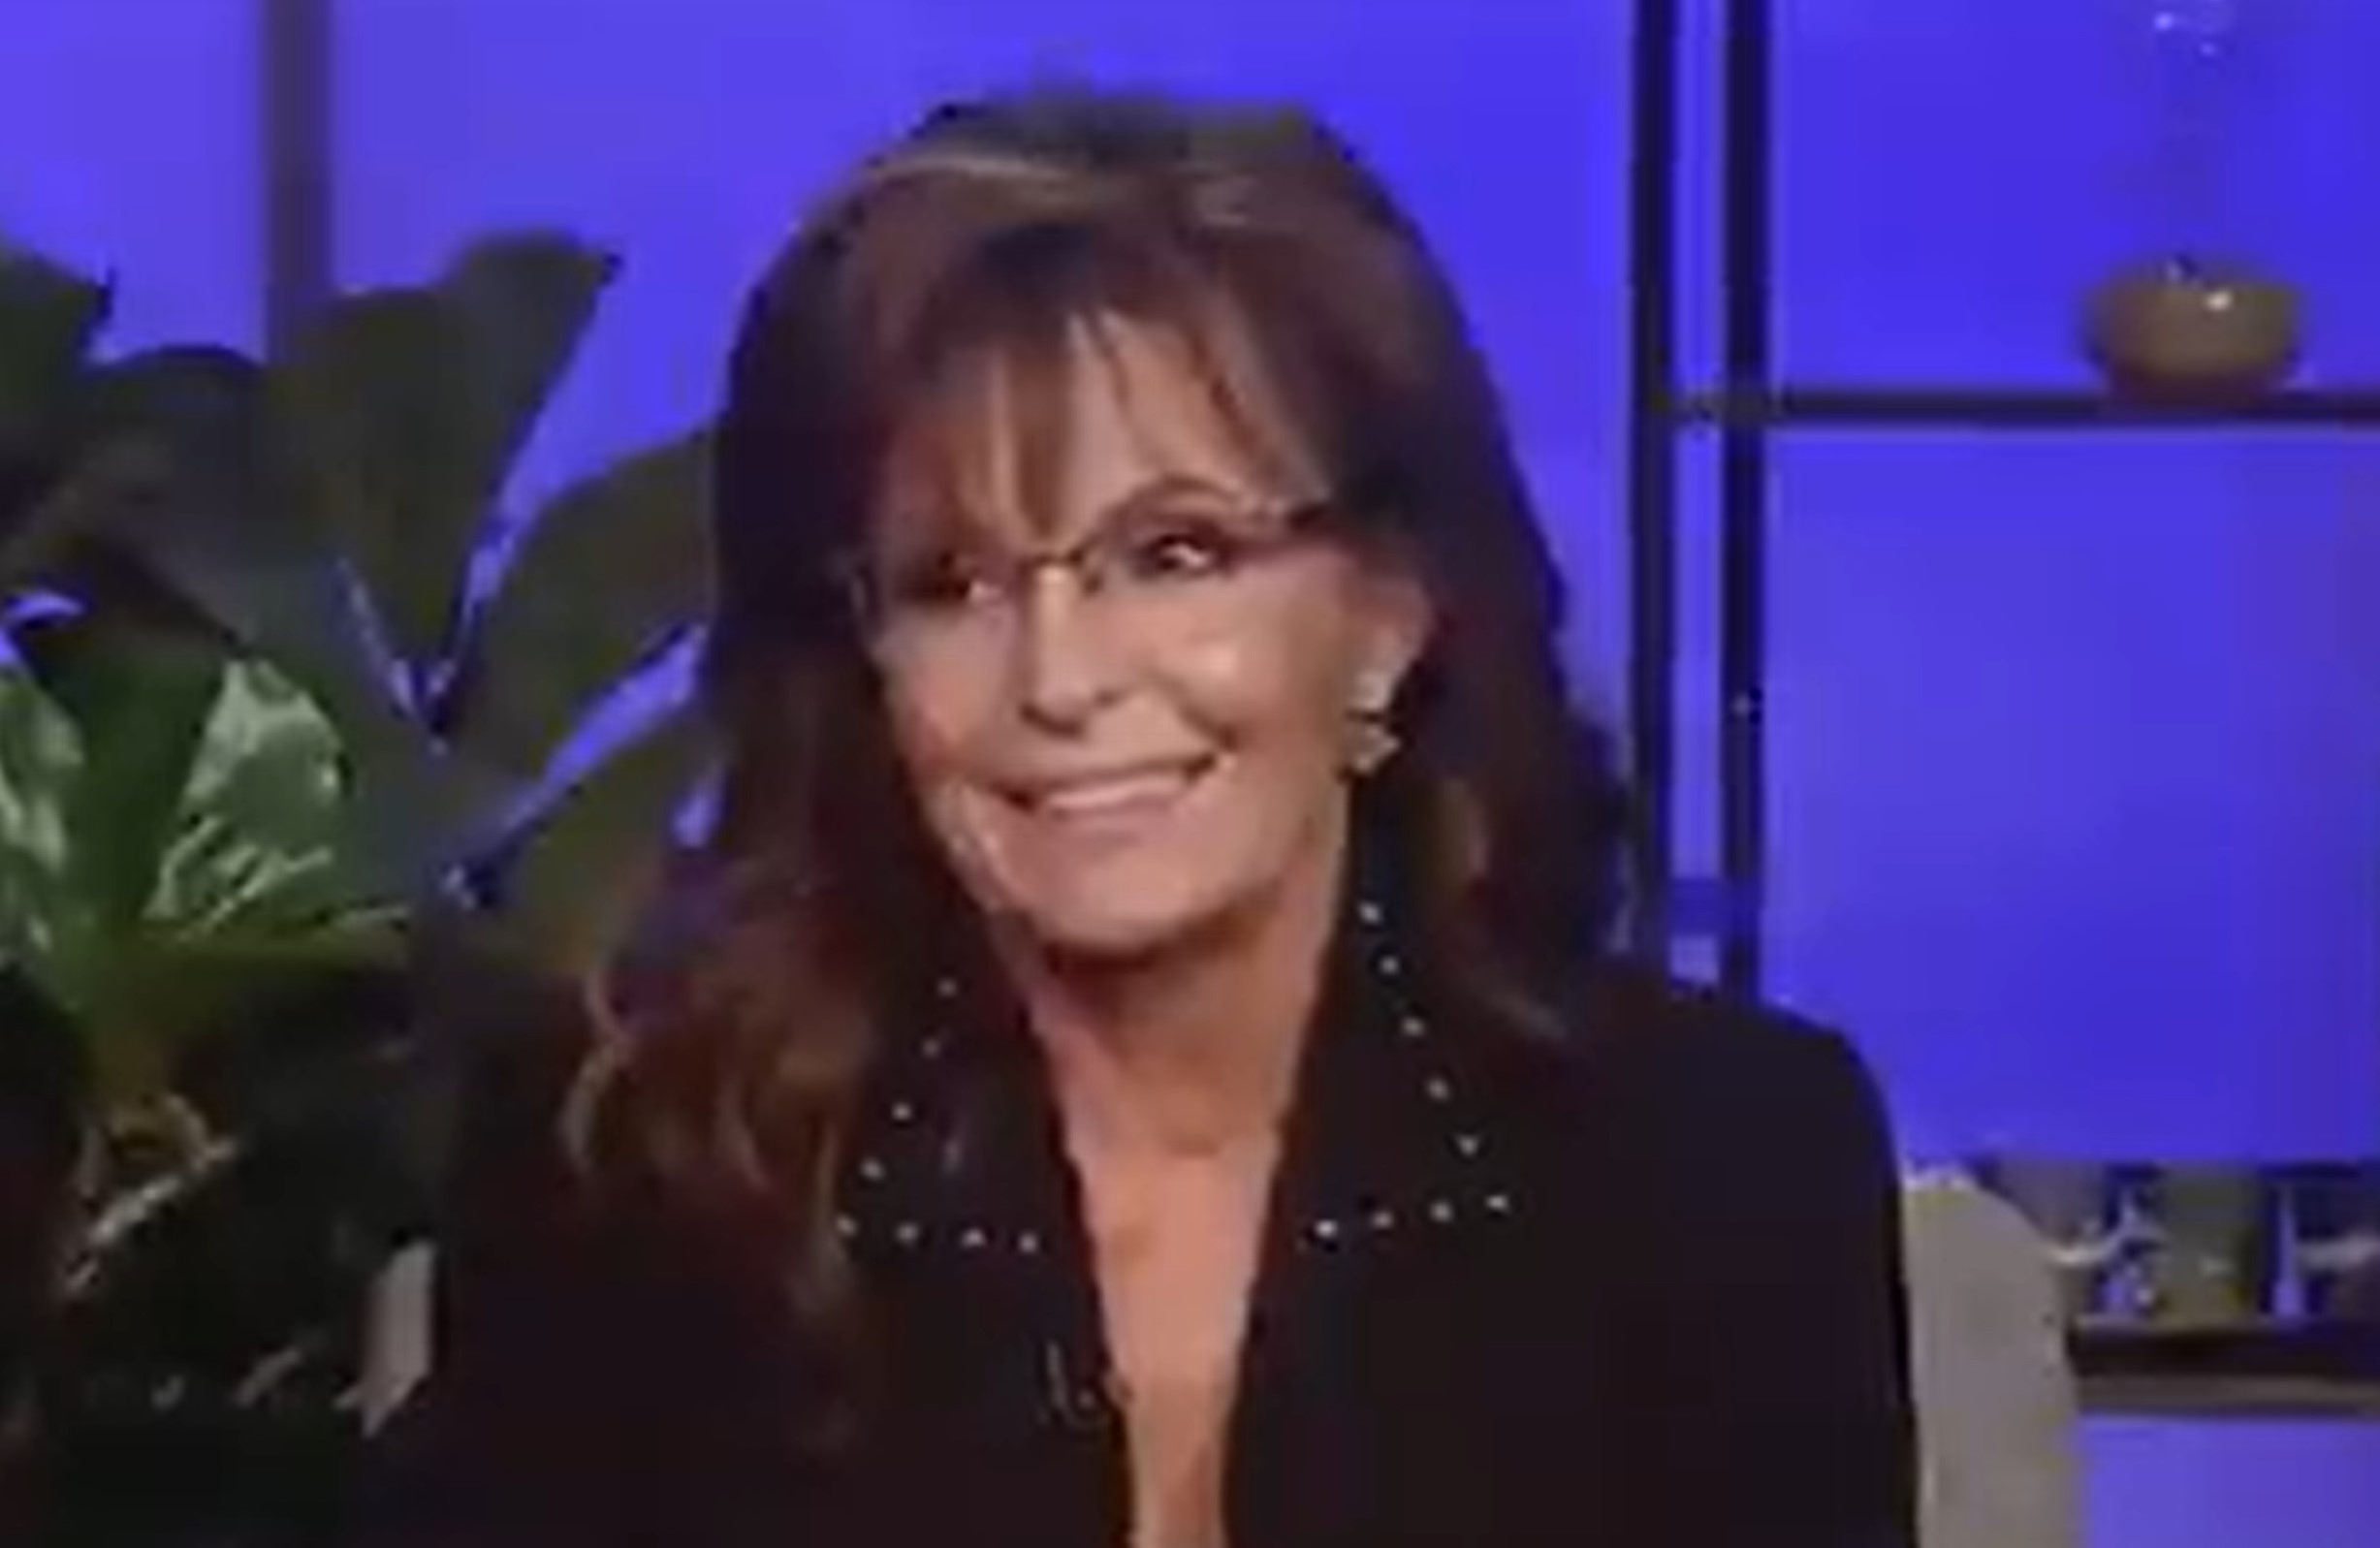 Sarah Palin freezes in awkward smile as Fox host lets loose with creepy sexual innuendoAlex BollingerLGBTQ Nation